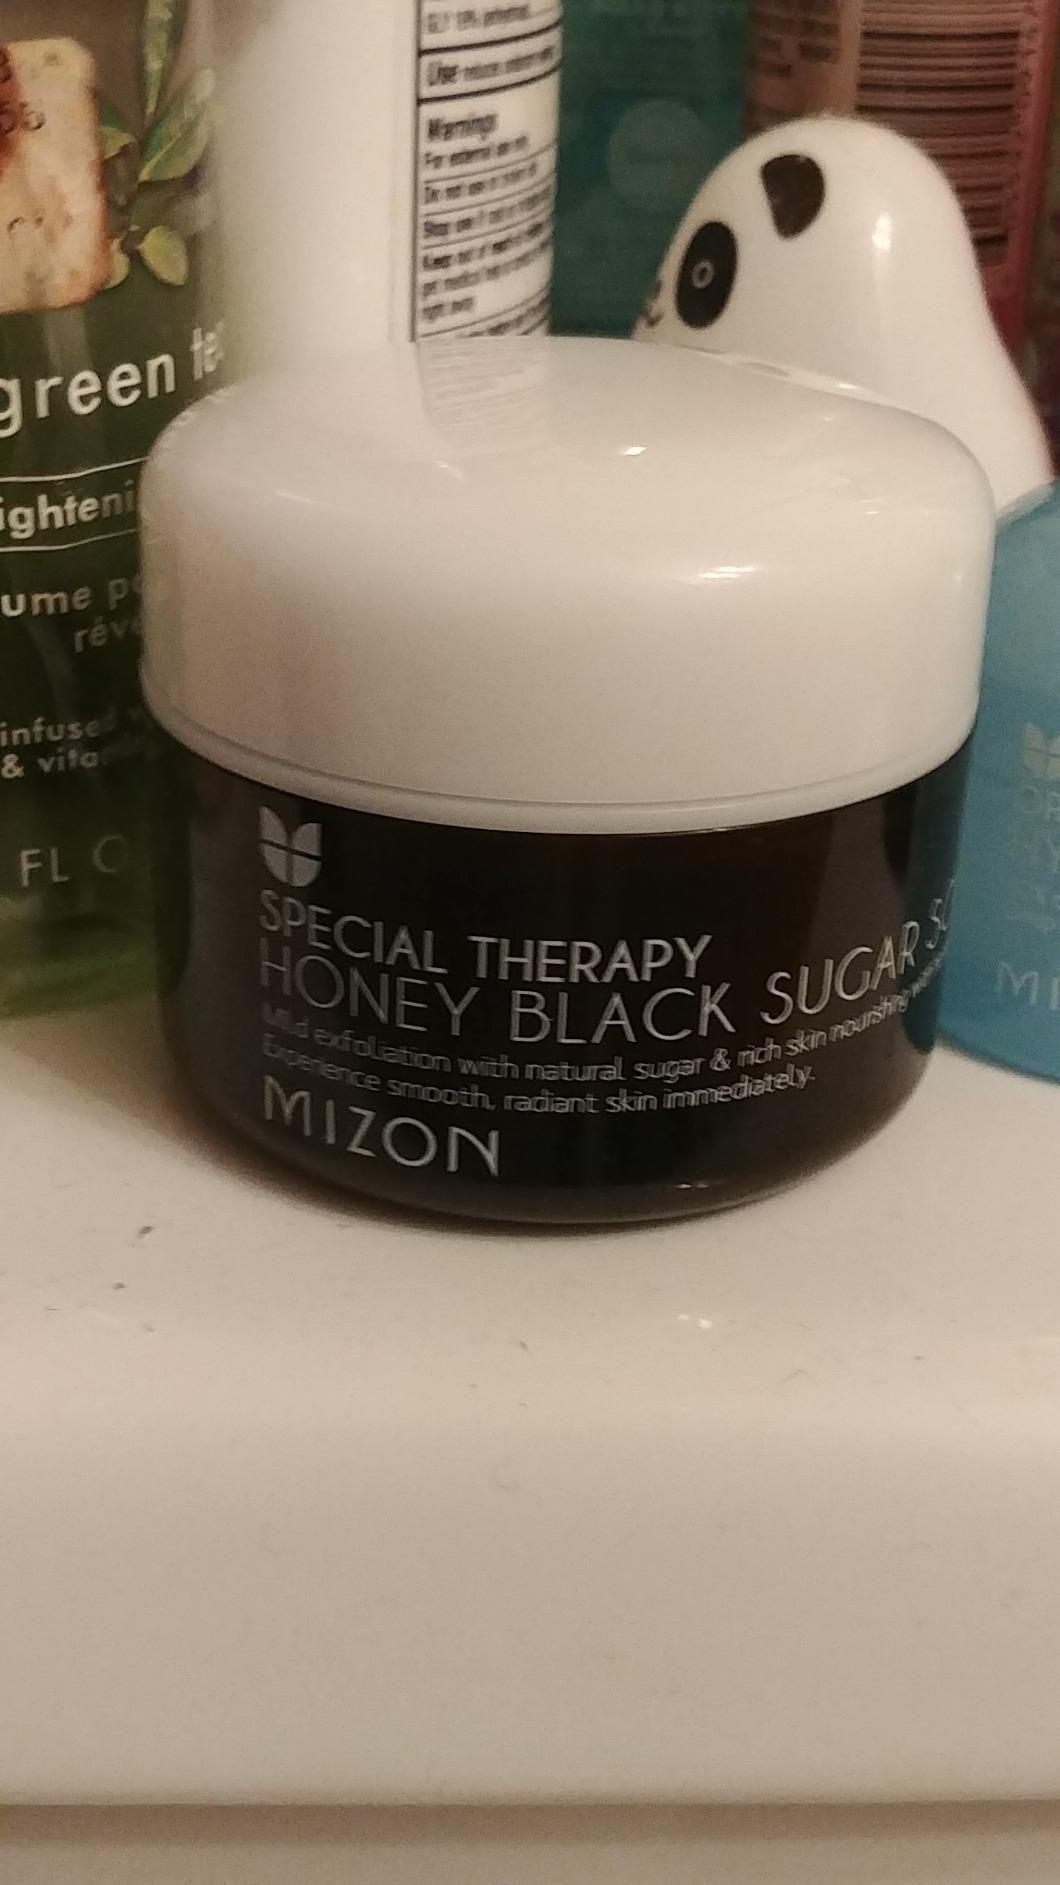 MIZON Honey Black Sugar Scrub 80 ml - Amazon Mỹ | Fado vn